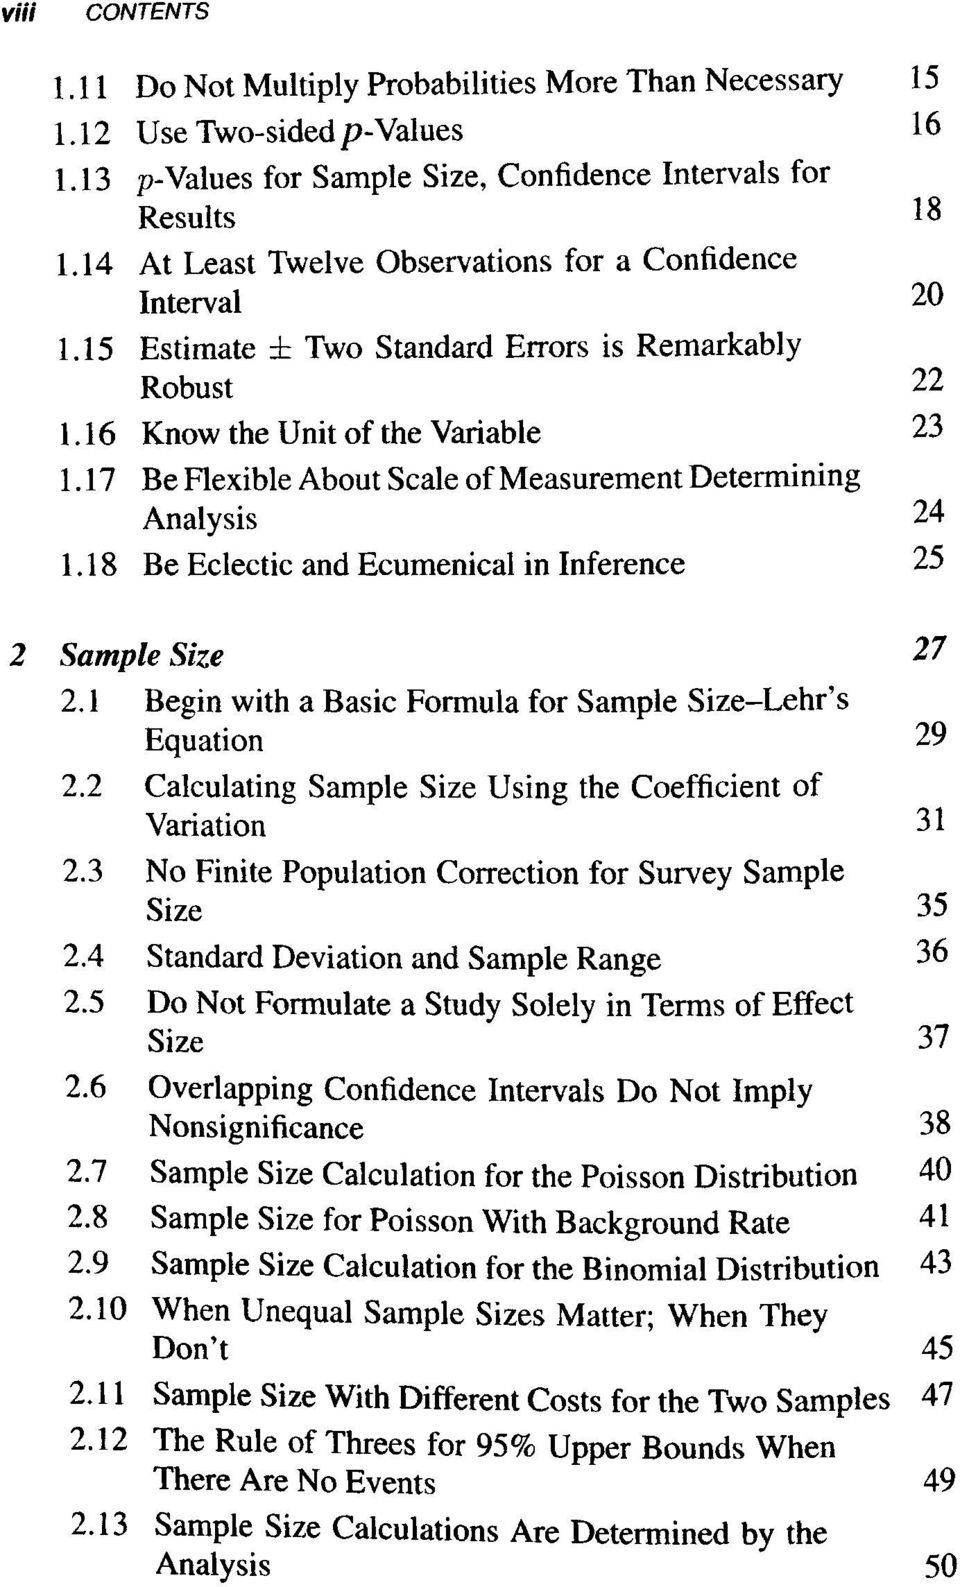 17 Be Flexible About Scale of Measurement Determining Analysis 24 1.18 Be Eclectic and Ecumenical in Inference 25 2 Sample Size 27 2.1 Begin with a Basic Formula for Sample Size-Lehr's Equation 29 2.